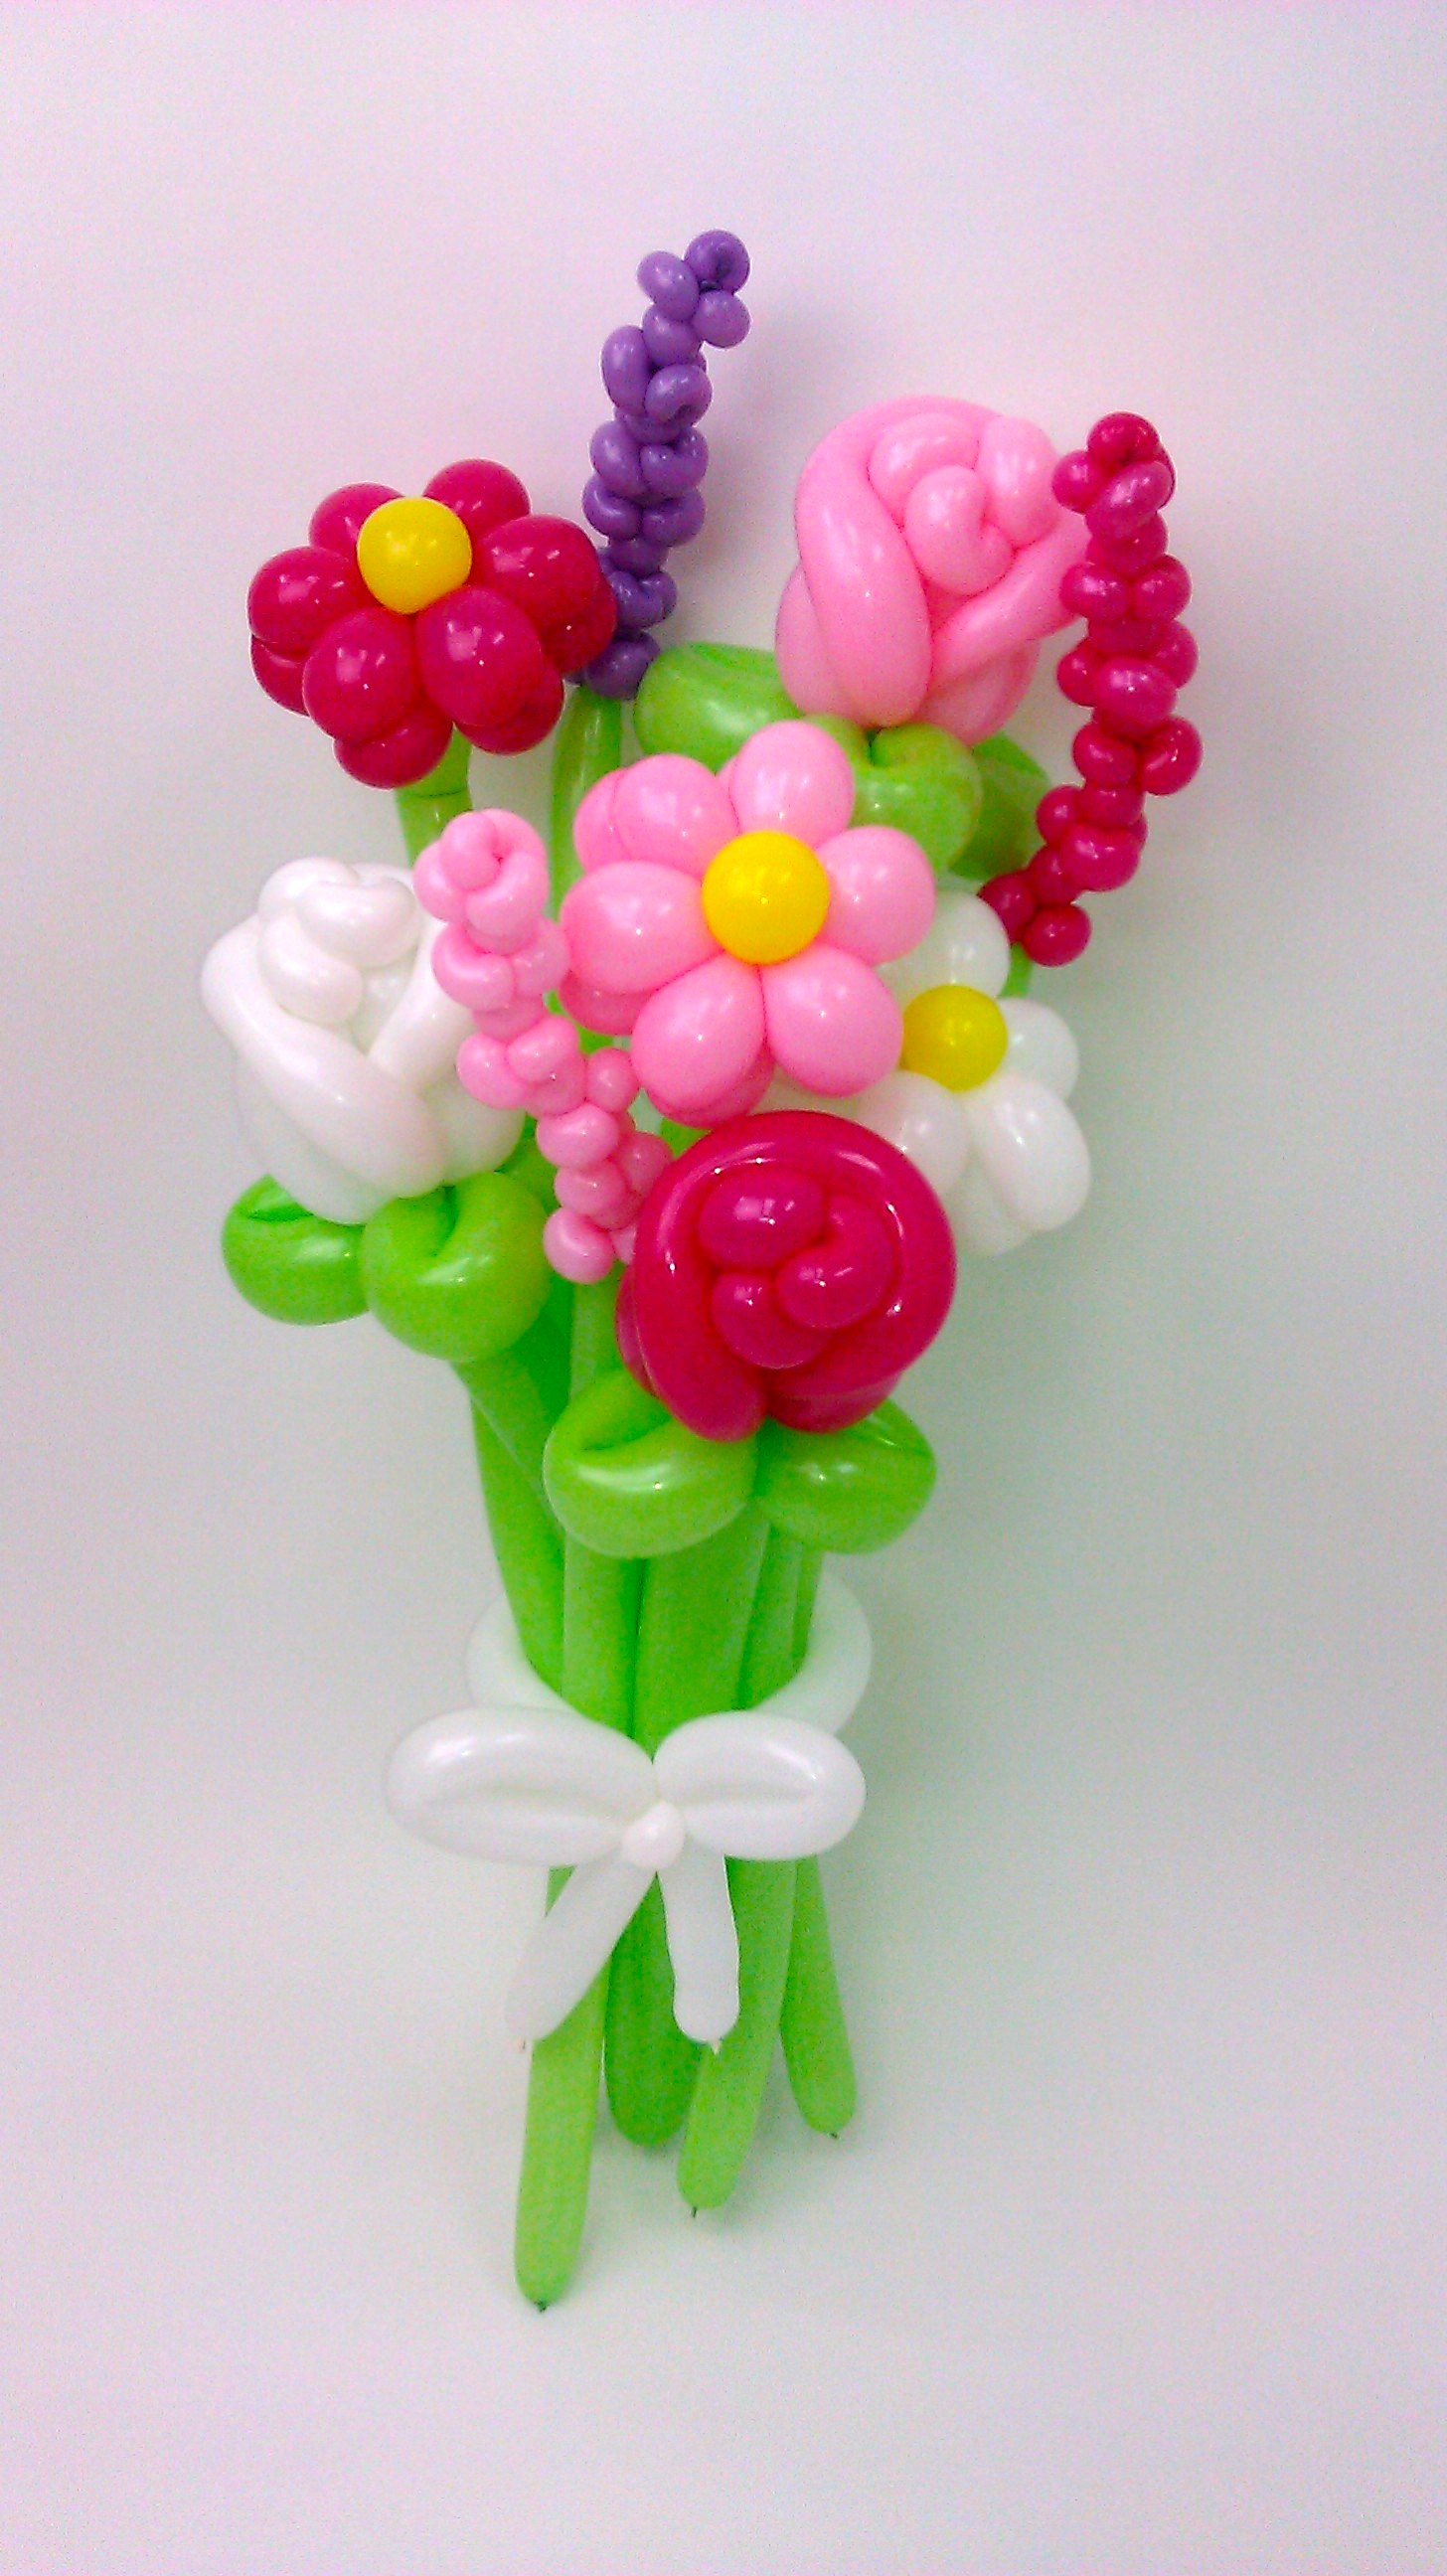 Daisy, Rose, Stalk Flower Balloon Bouquet | BALLOON ANIMALS PALM BEACH